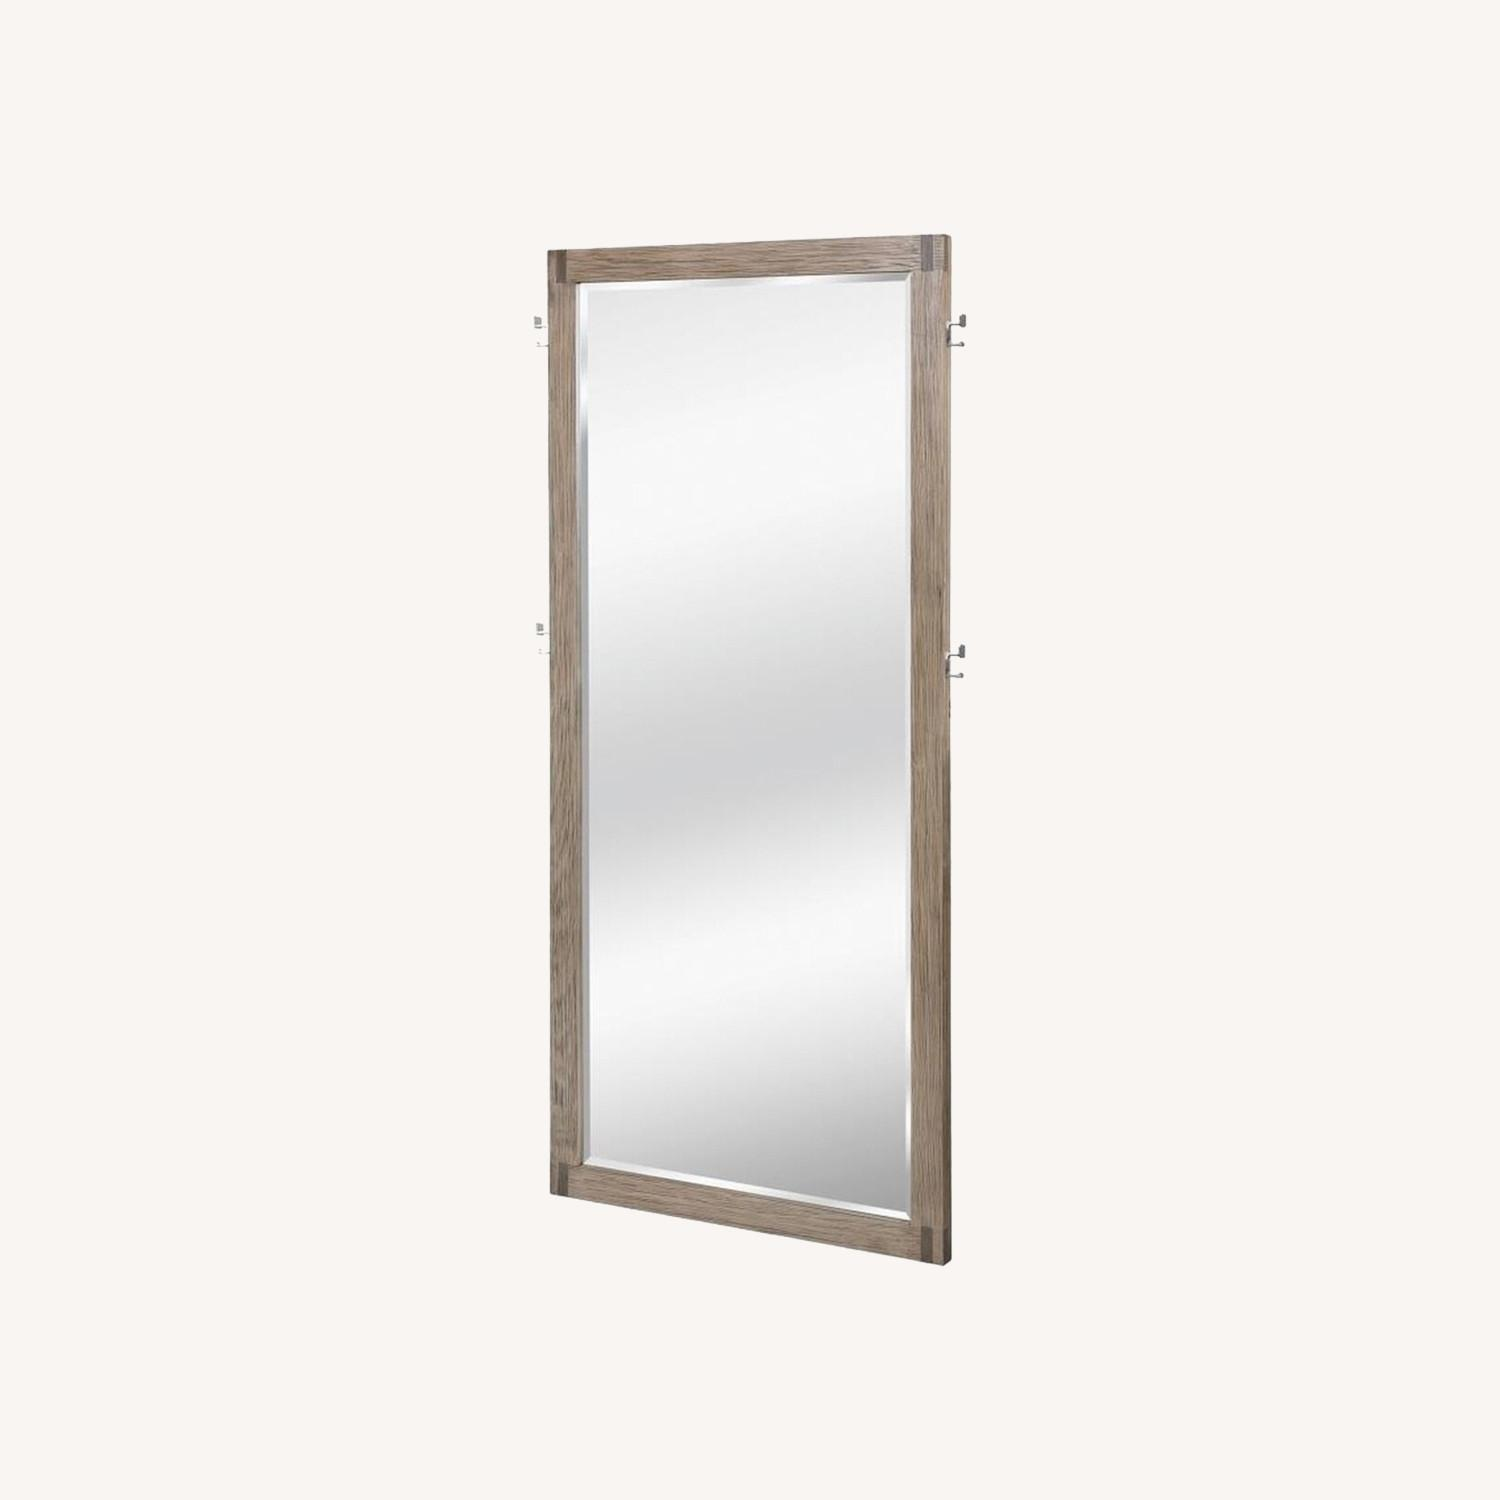 Modern Floor Mirror in Grey Oak Frame W/ Hooks - image-4